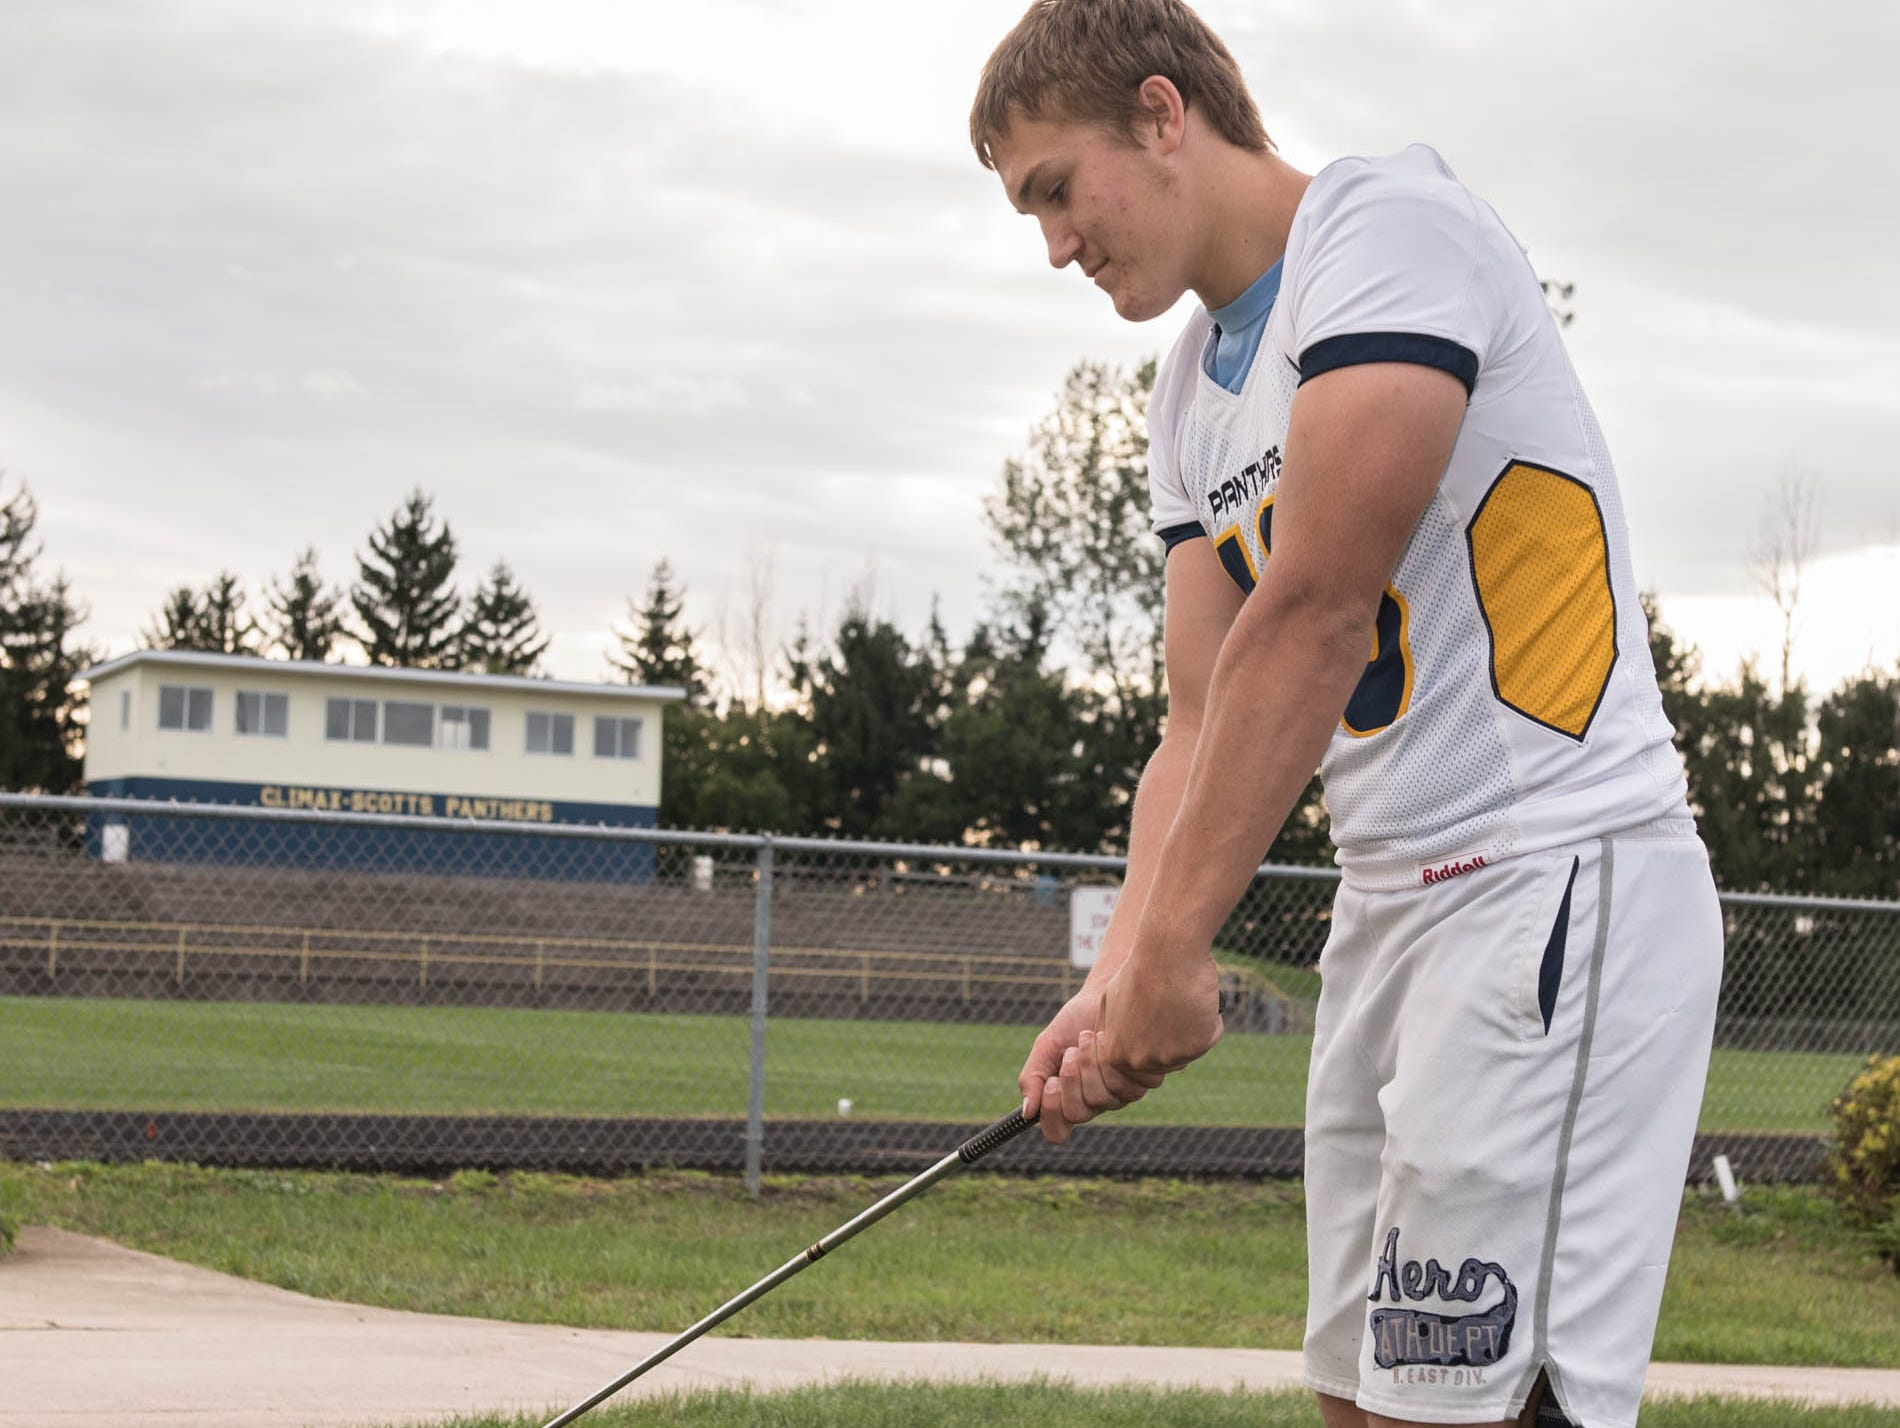 Zach Scholly of Climax-Scotts plays six different sports during the school year, including football, cross country, basketball, wrestling, track and golf.